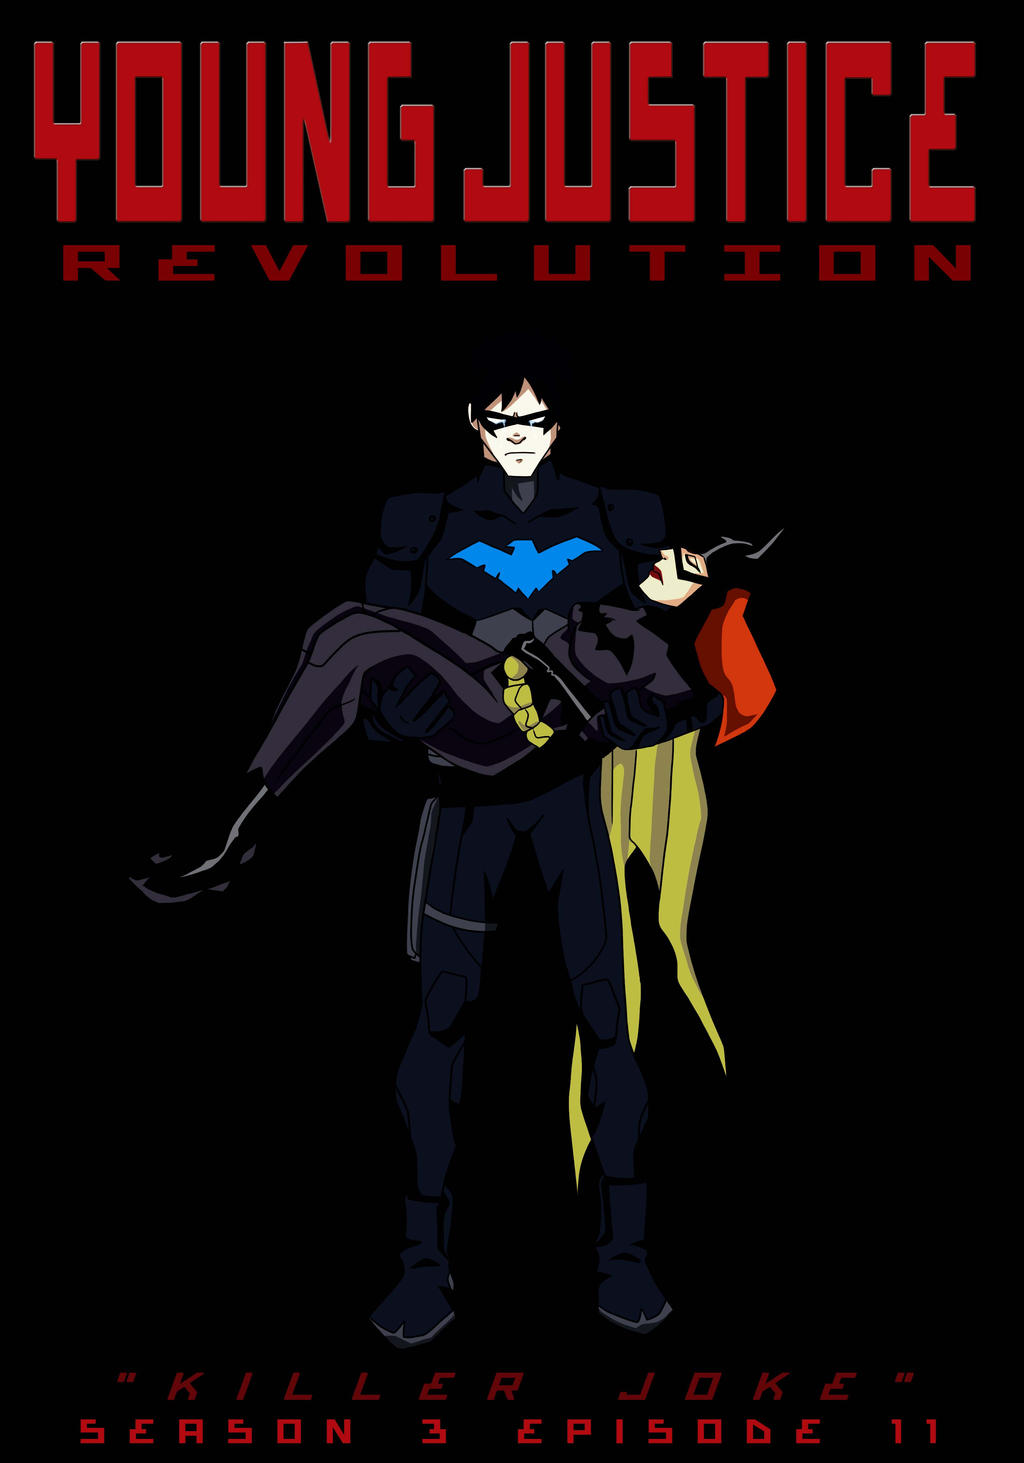 Young Justice Season 3 Ep11 by yurixmeister on DeviantArt